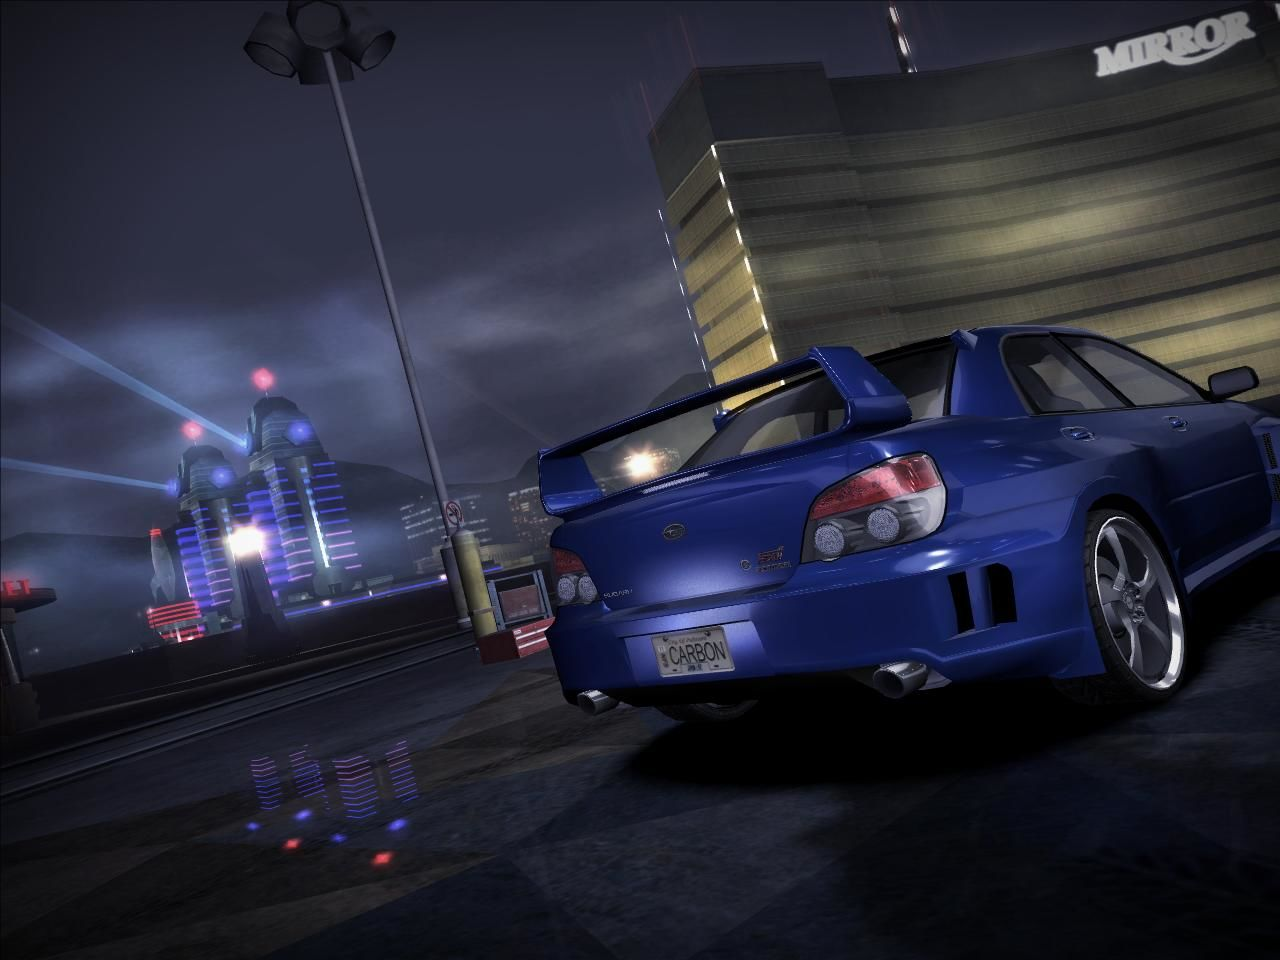 Need for Speed: Carbon Windows The main menu screen without the legends! Makes up for a nice wallpaper for your desktop!